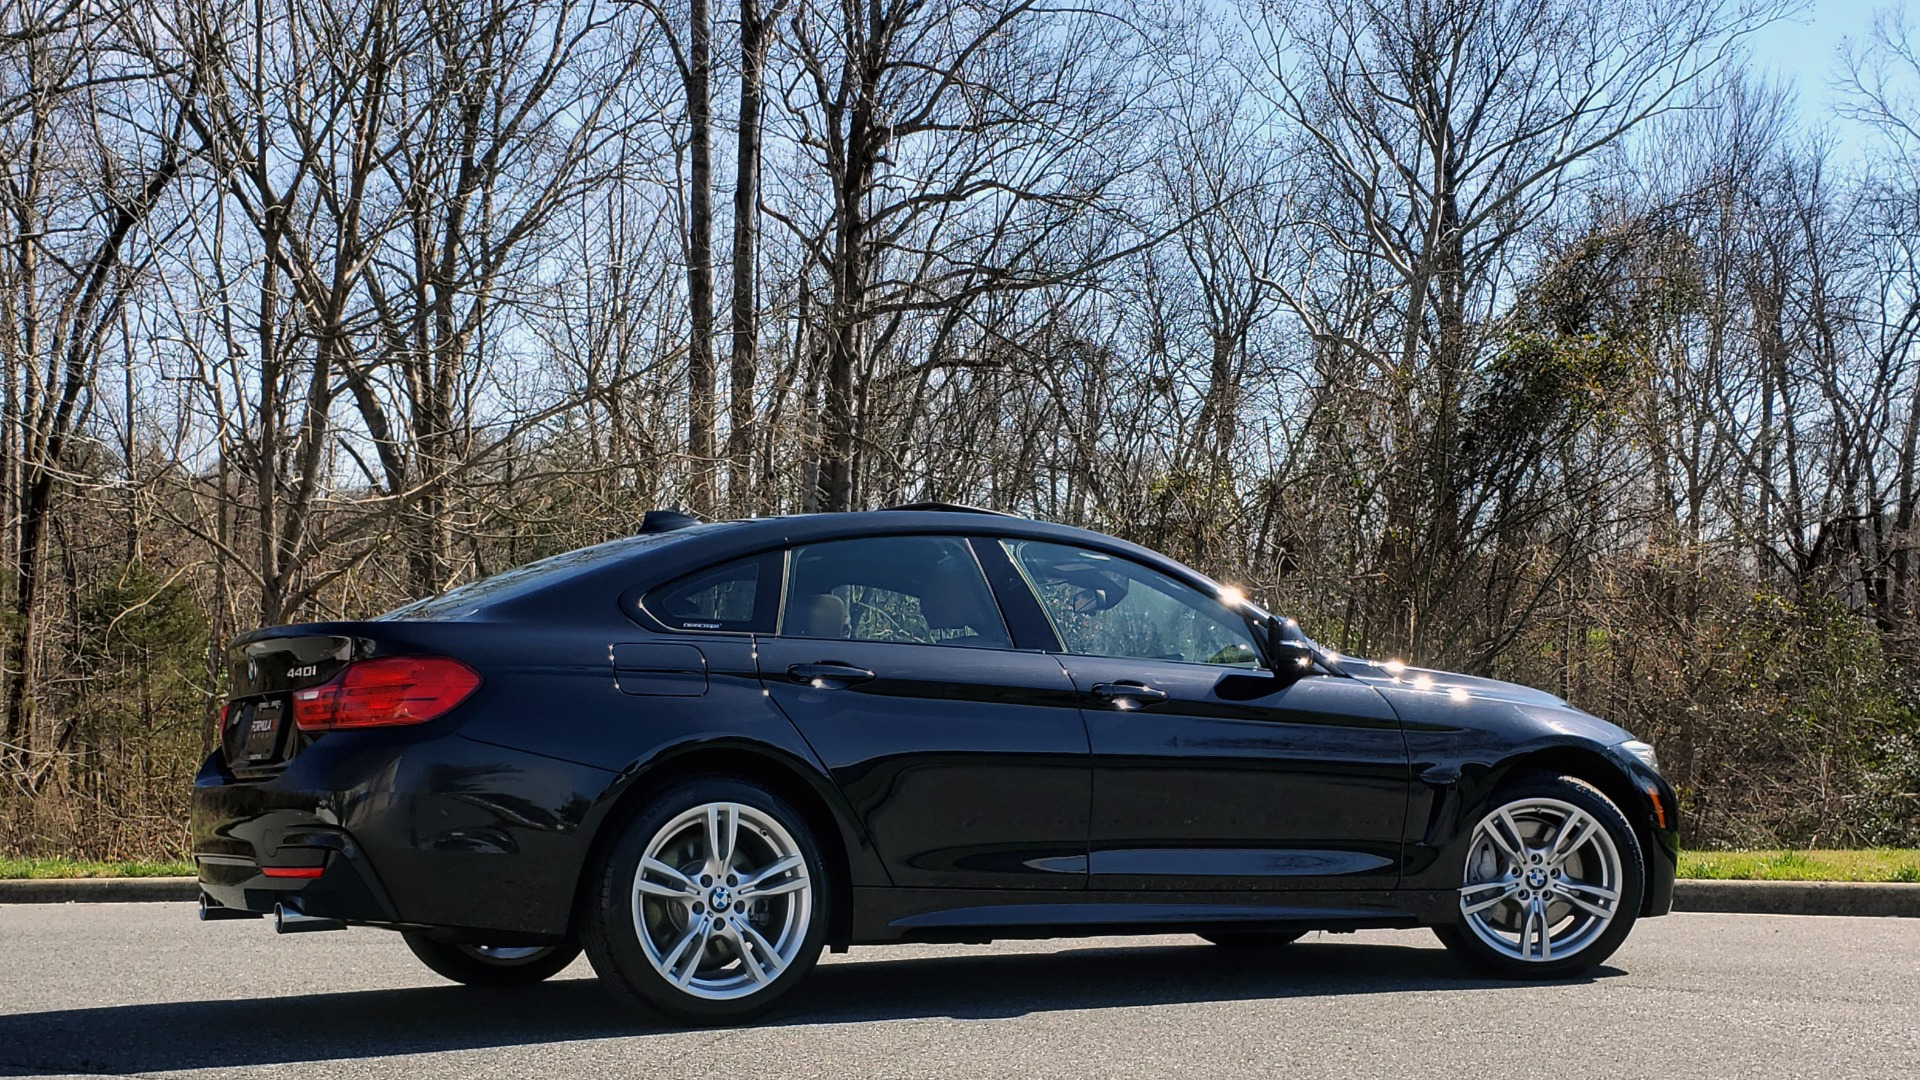 Used 2017 BMW 4 SERIES 440i XDRIVE M-SPORT / TECH / CLD WTHR / DRVR ASST PLUS / LIGHTING for sale Sold at Formula Imports in Charlotte NC 28227 6